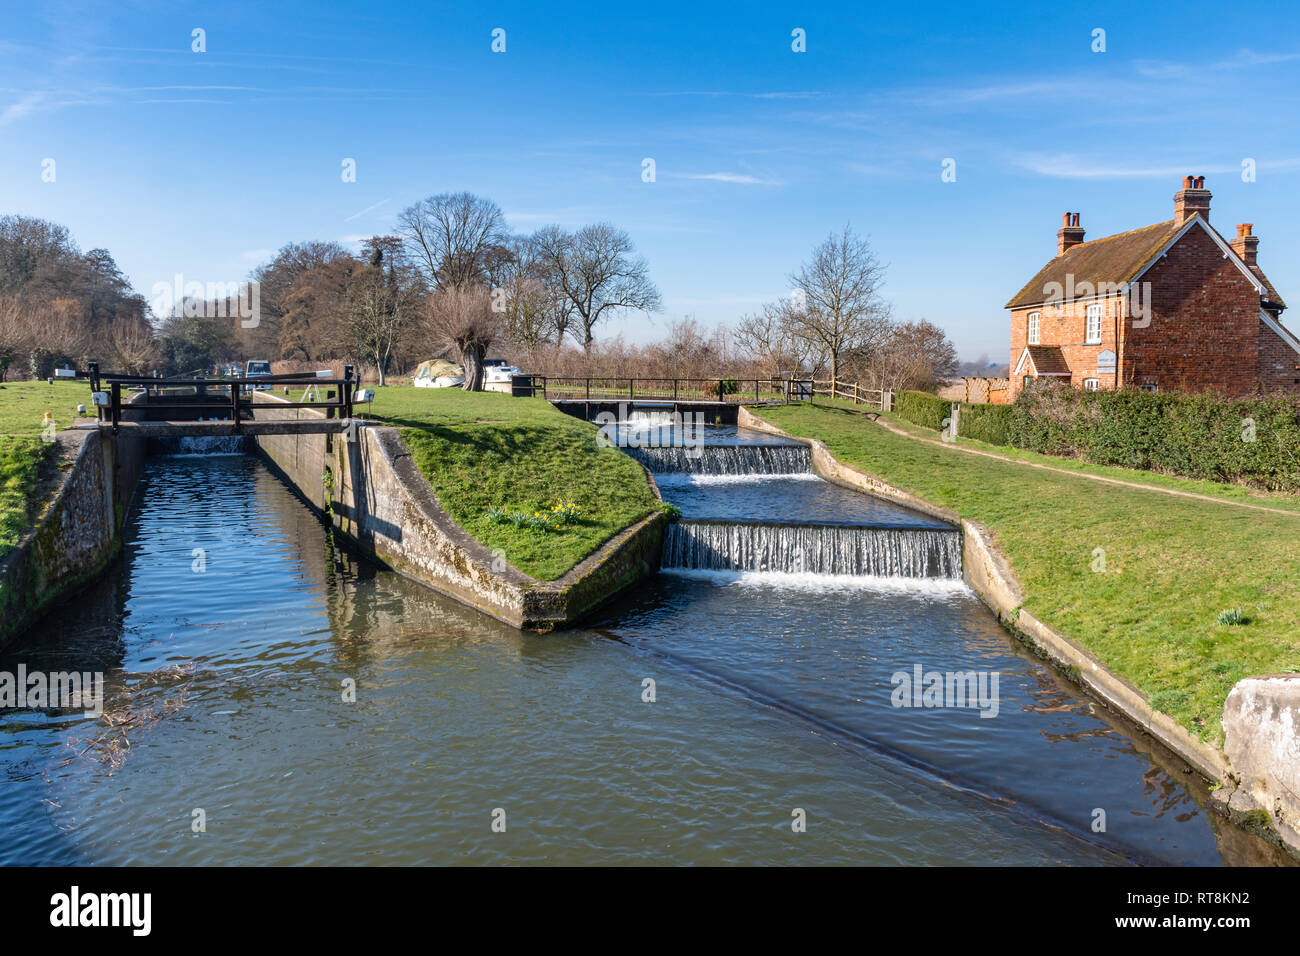 papercourt-lock-and-lock-keepers-cottage-on-the-picturesque-river-wey-navigation-in-surrey-uk-on-a-sunny-day-RT8KN2.jpg